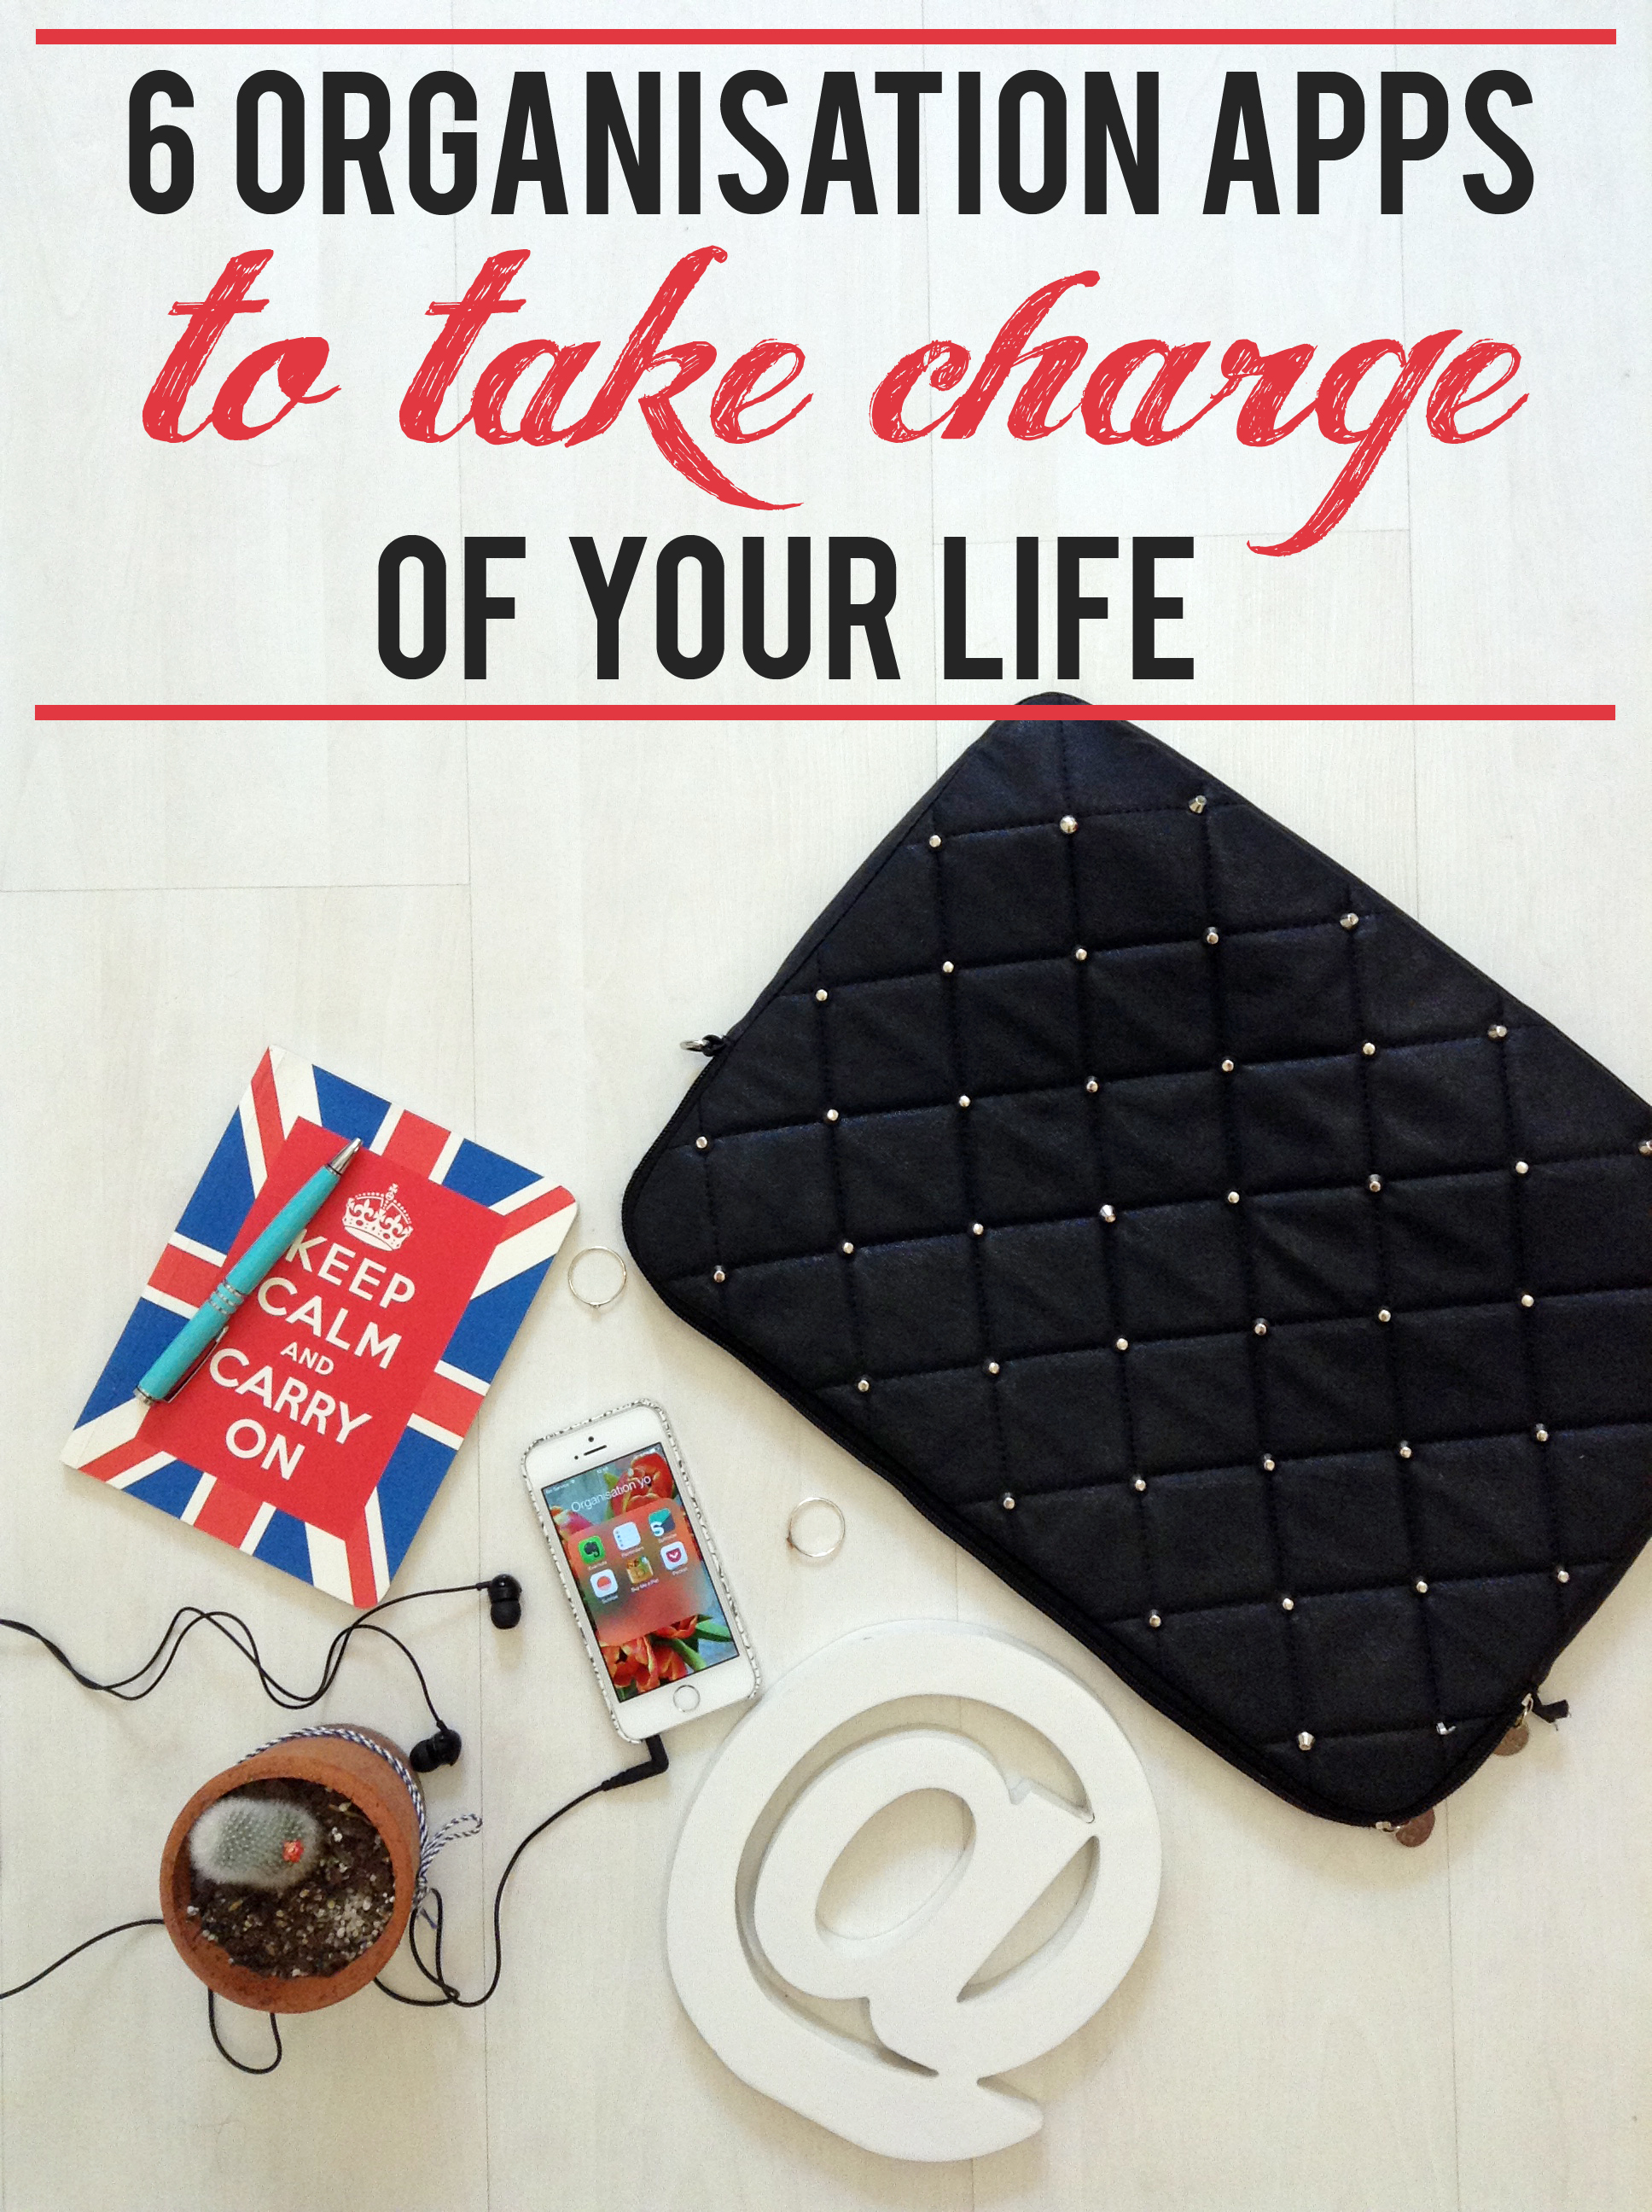 Level up: 6 organisation apps to take charge of your life